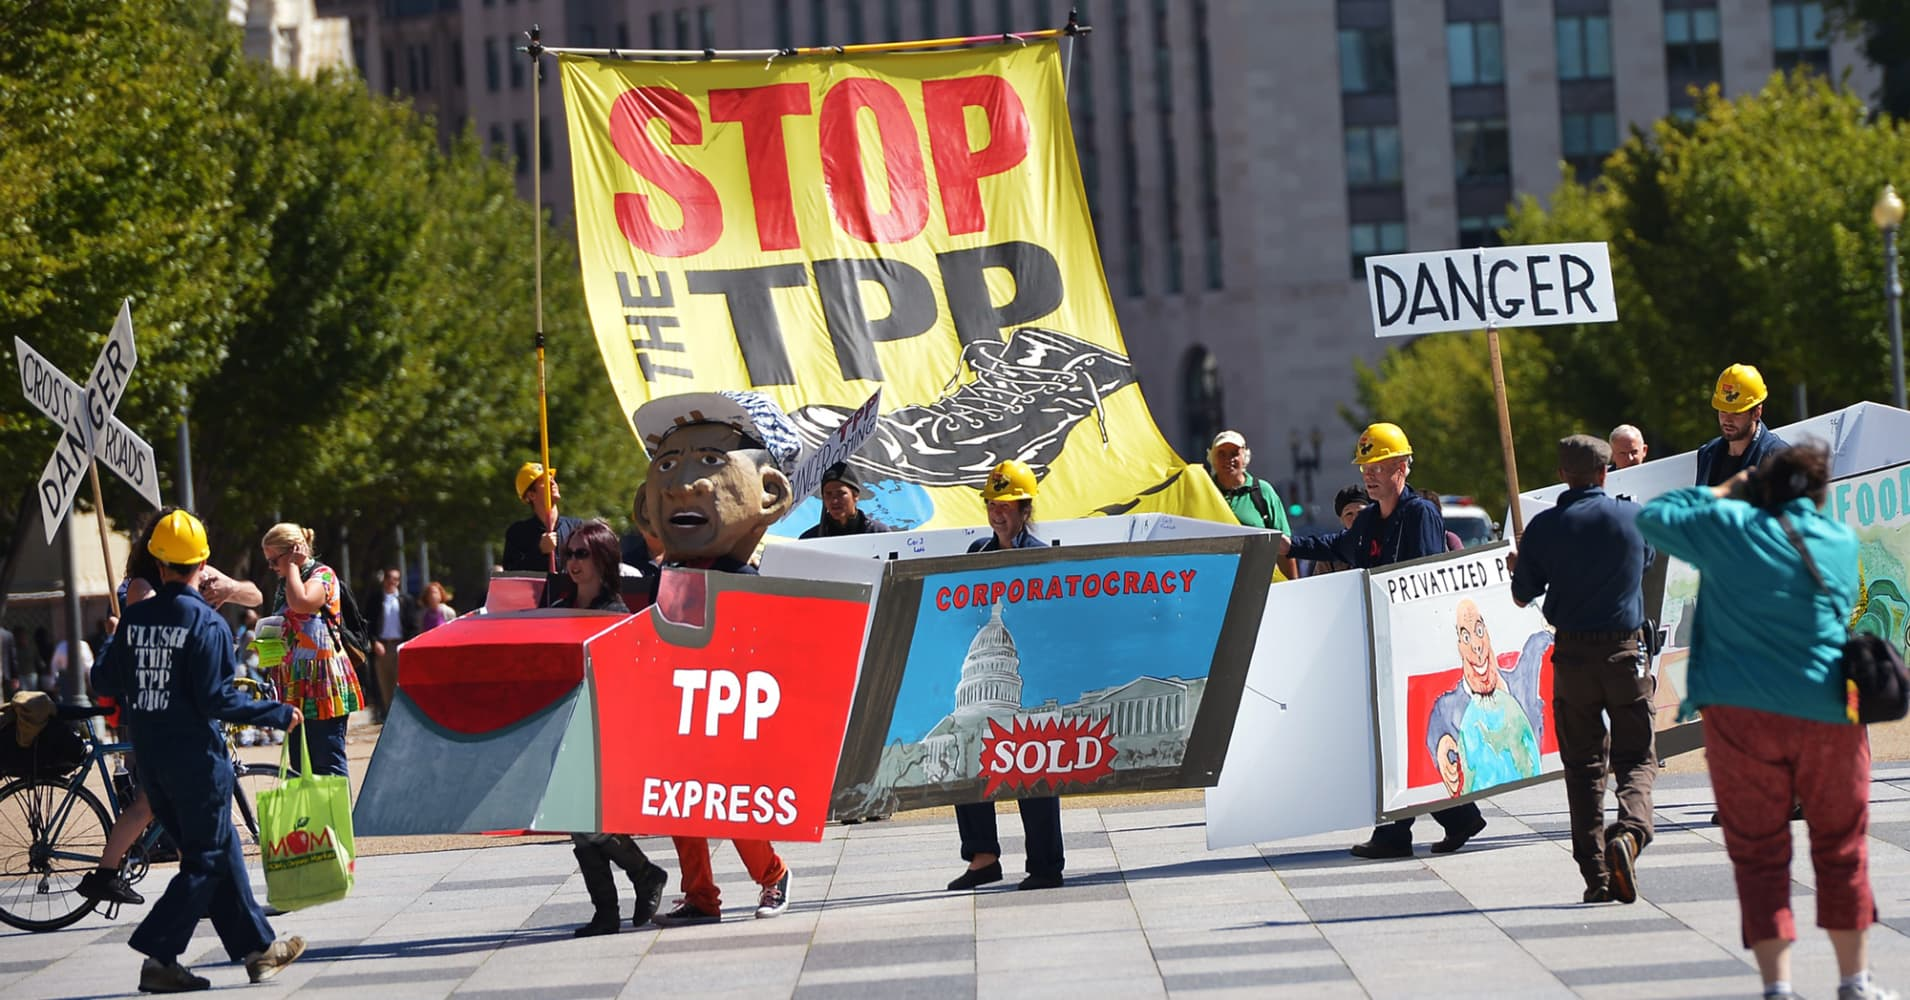 Demonstrators protesting against the Trans-Pacific Partnership are seen on Pennsylvania Avenue, in Washington, D.C.